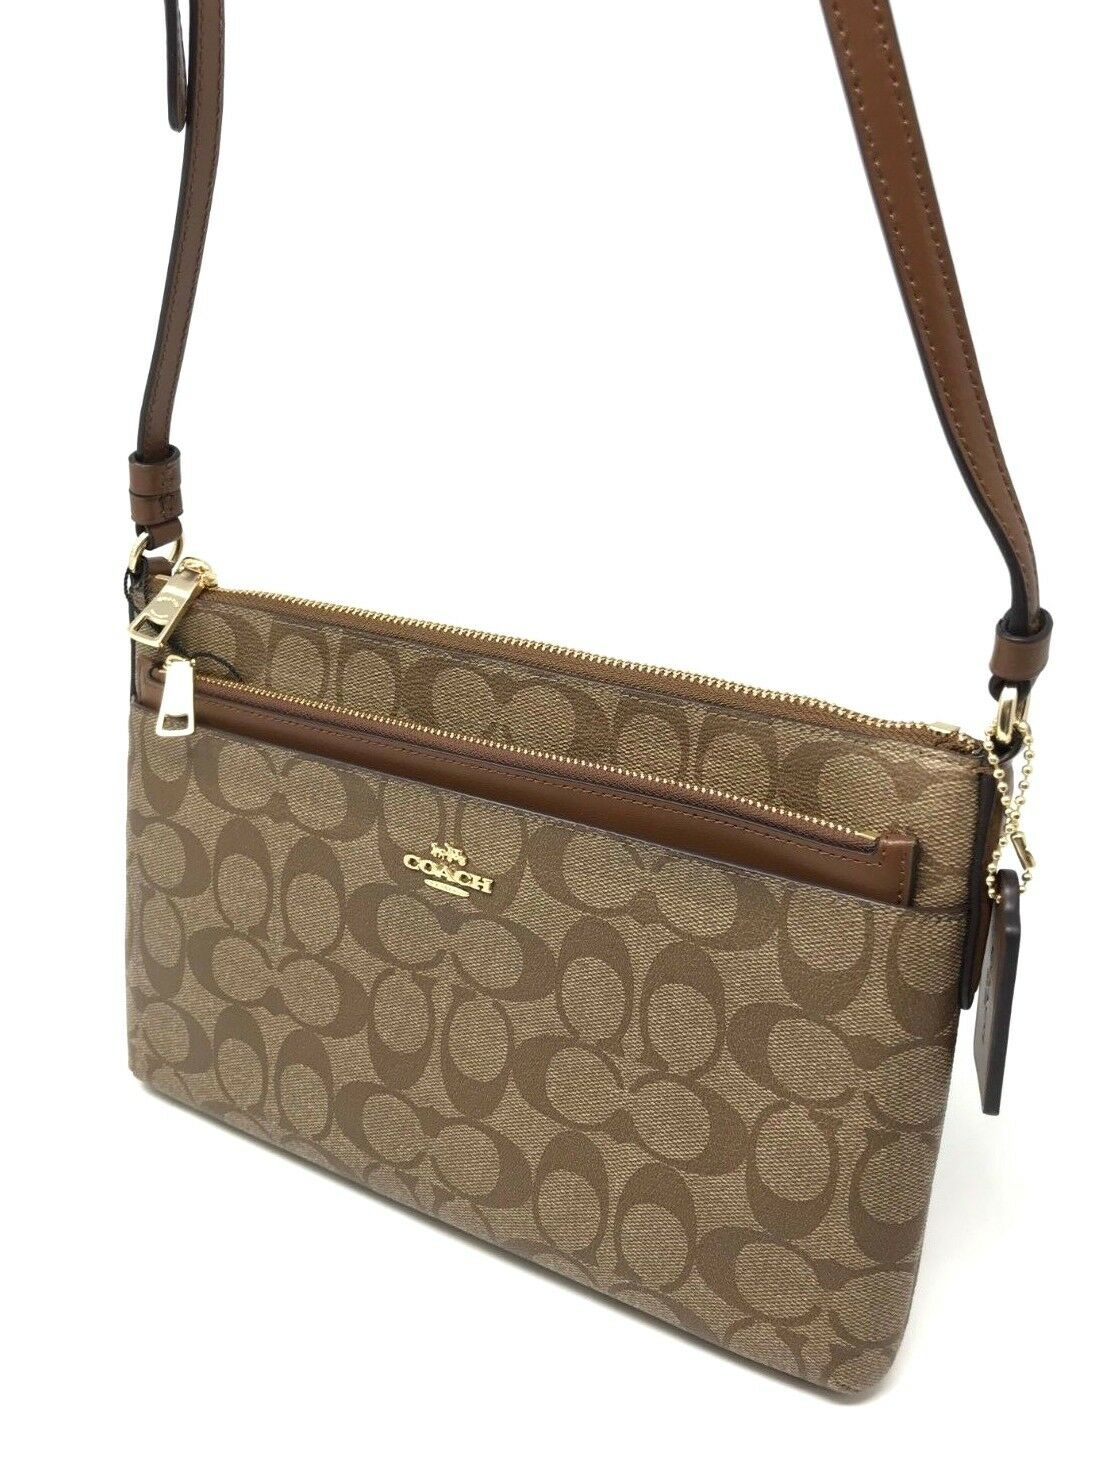 Coach East/West Crossbody w/ Pop-up Pouch in Signature Khaki Saddle F58316 $225